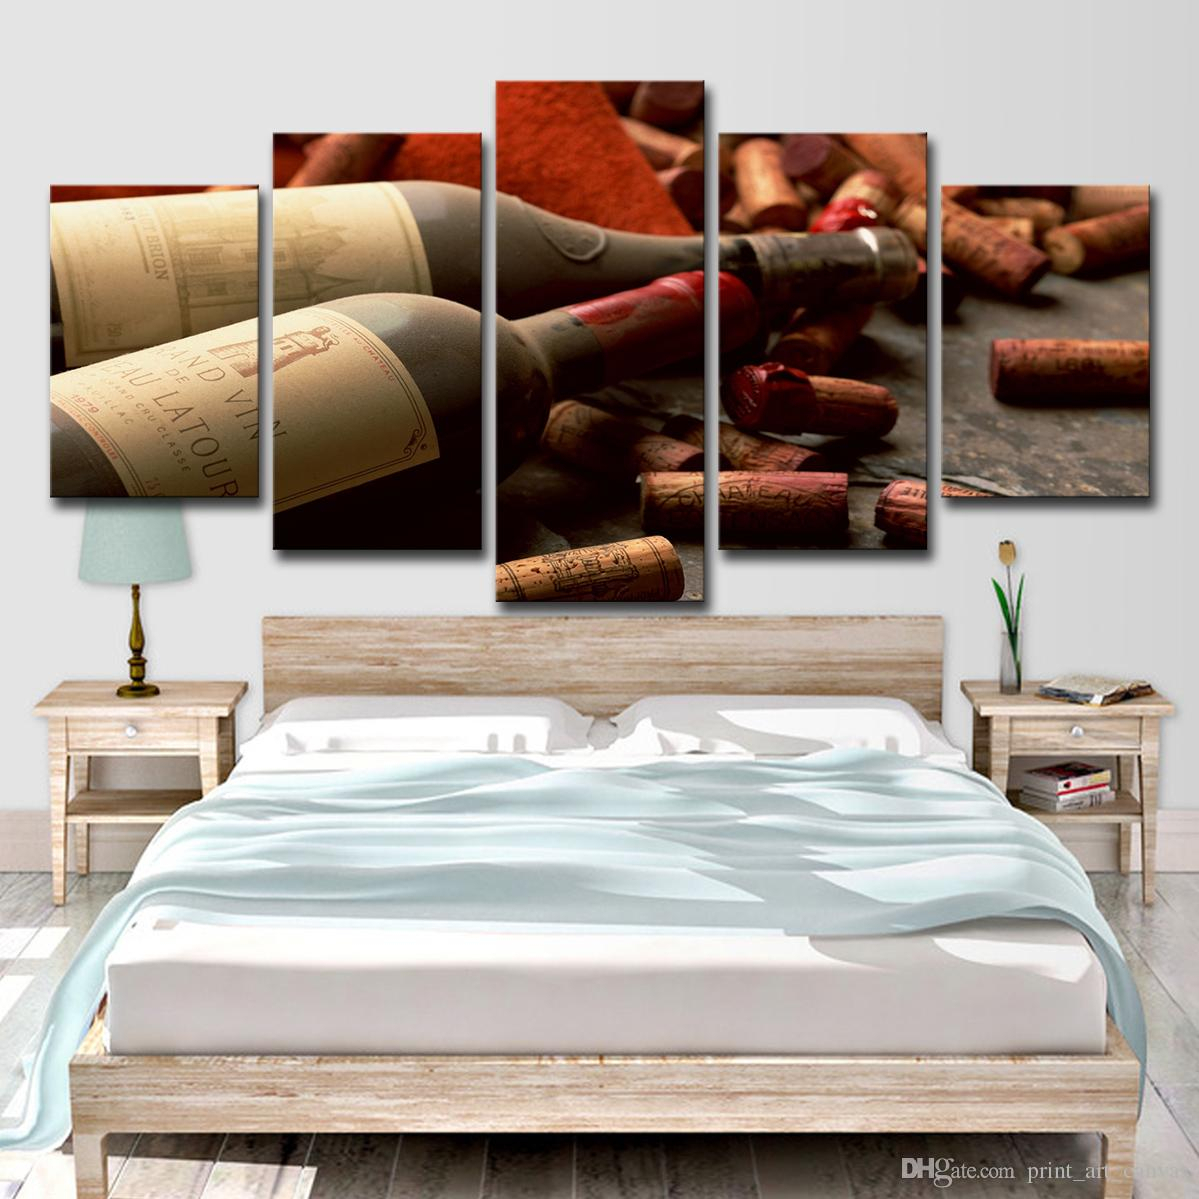 Latest 2019 Home Decor Hd Prints Pictures Kitchen Canvas Wall Art Poster Regarding Latour Wall Decor (View 8 of 20)